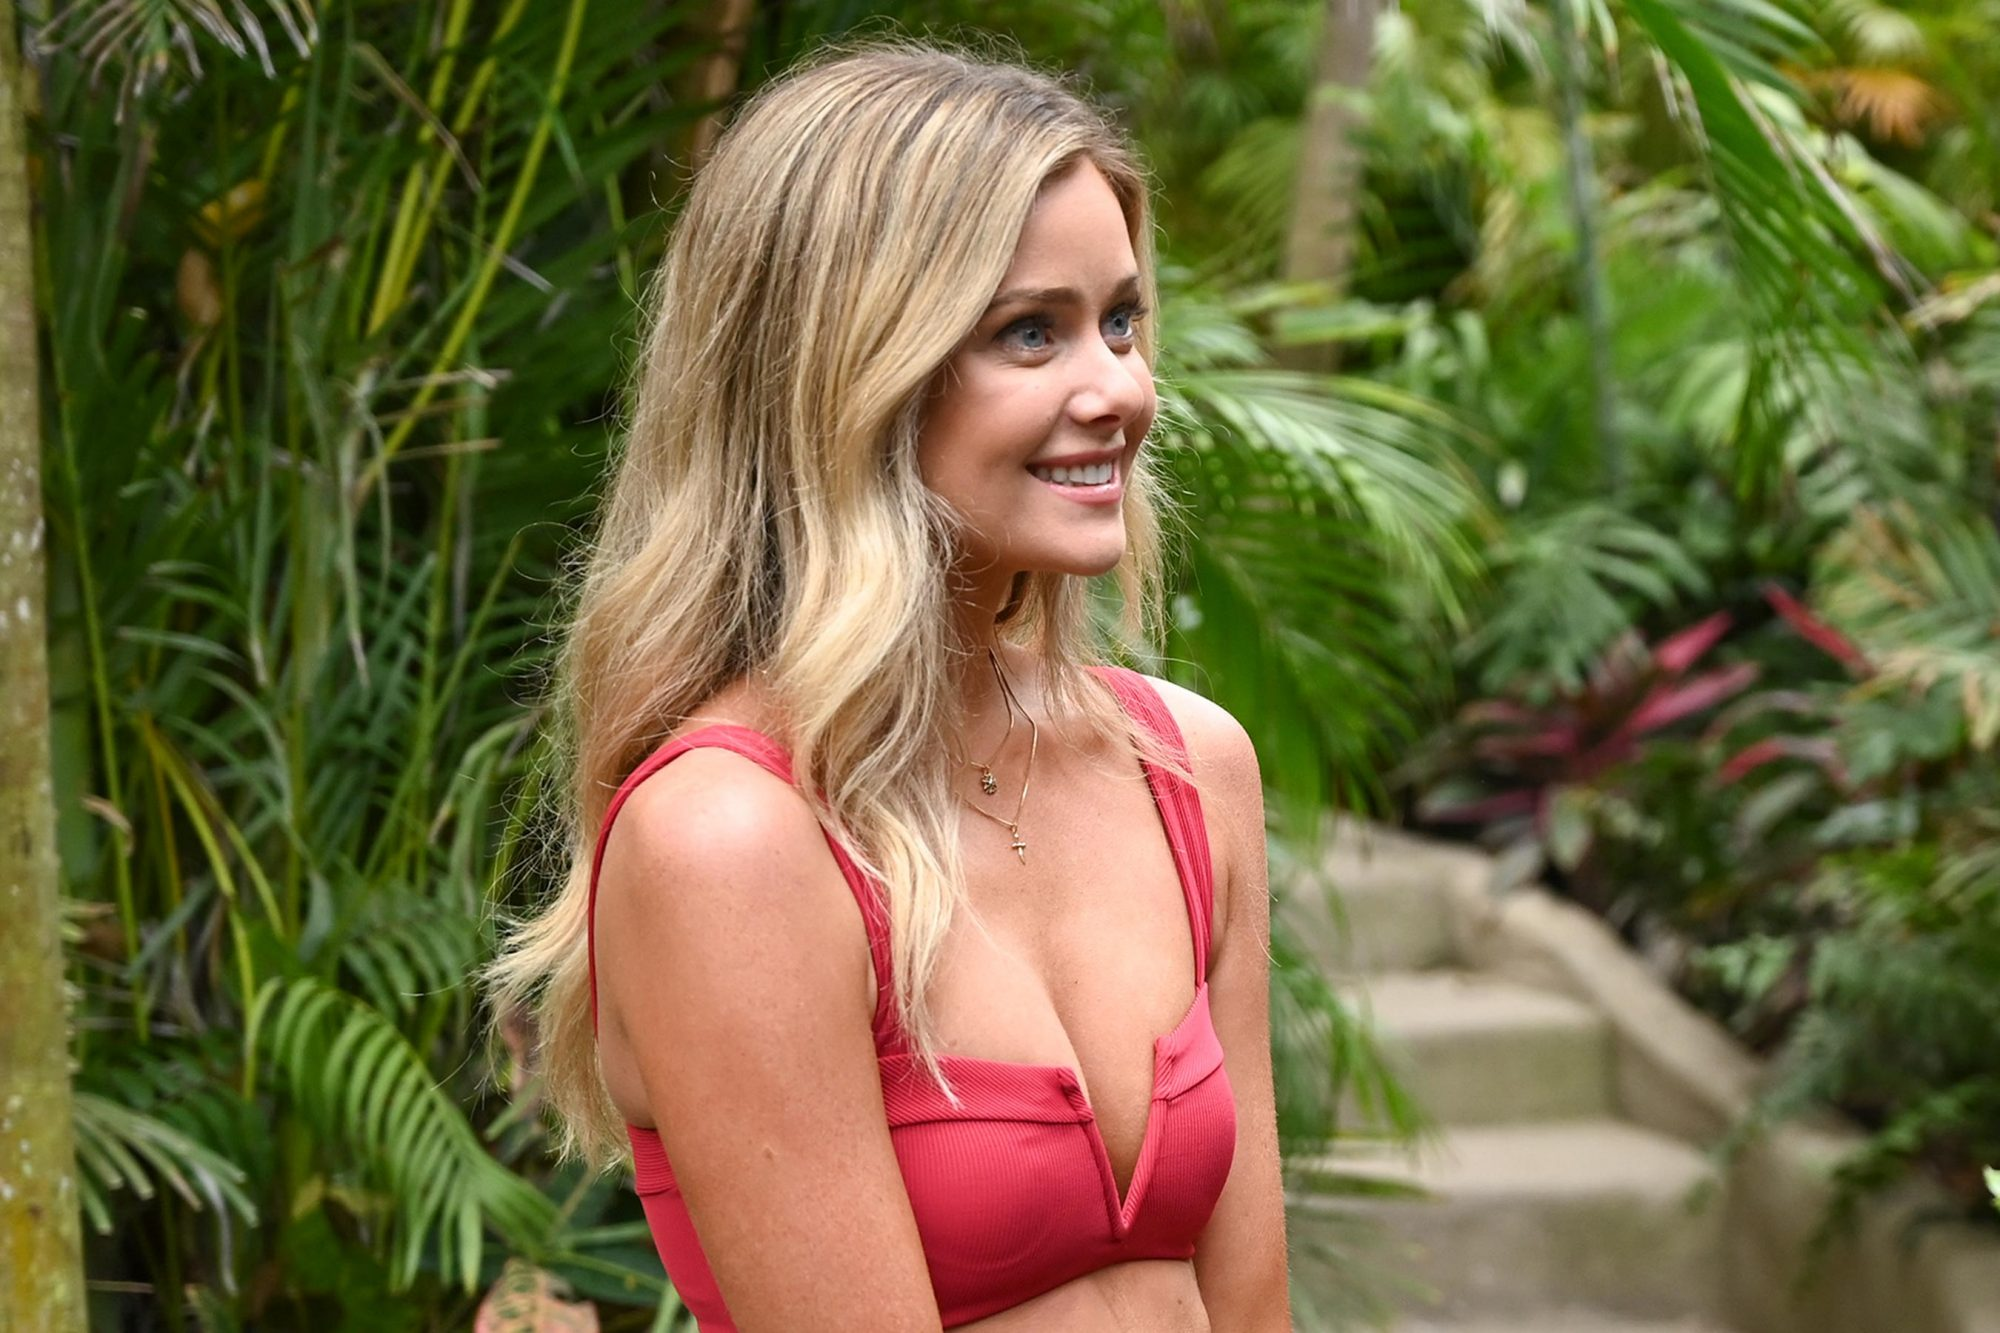 """BACHELOR IN PARADISE - """"601A"""" - In the premiere episode of what promises to be another wild ride of """"Bachelor in Paradise,"""" our favorite members of Bachelor Nation begin their journey for another chance at finding love at a luxurious Mexico resort, airing MONDAY, AUG. 5 (8:00-10:01 p.m. EDT), on ABC. (ABC/John Fleenor) HANNAH GODWIN"""